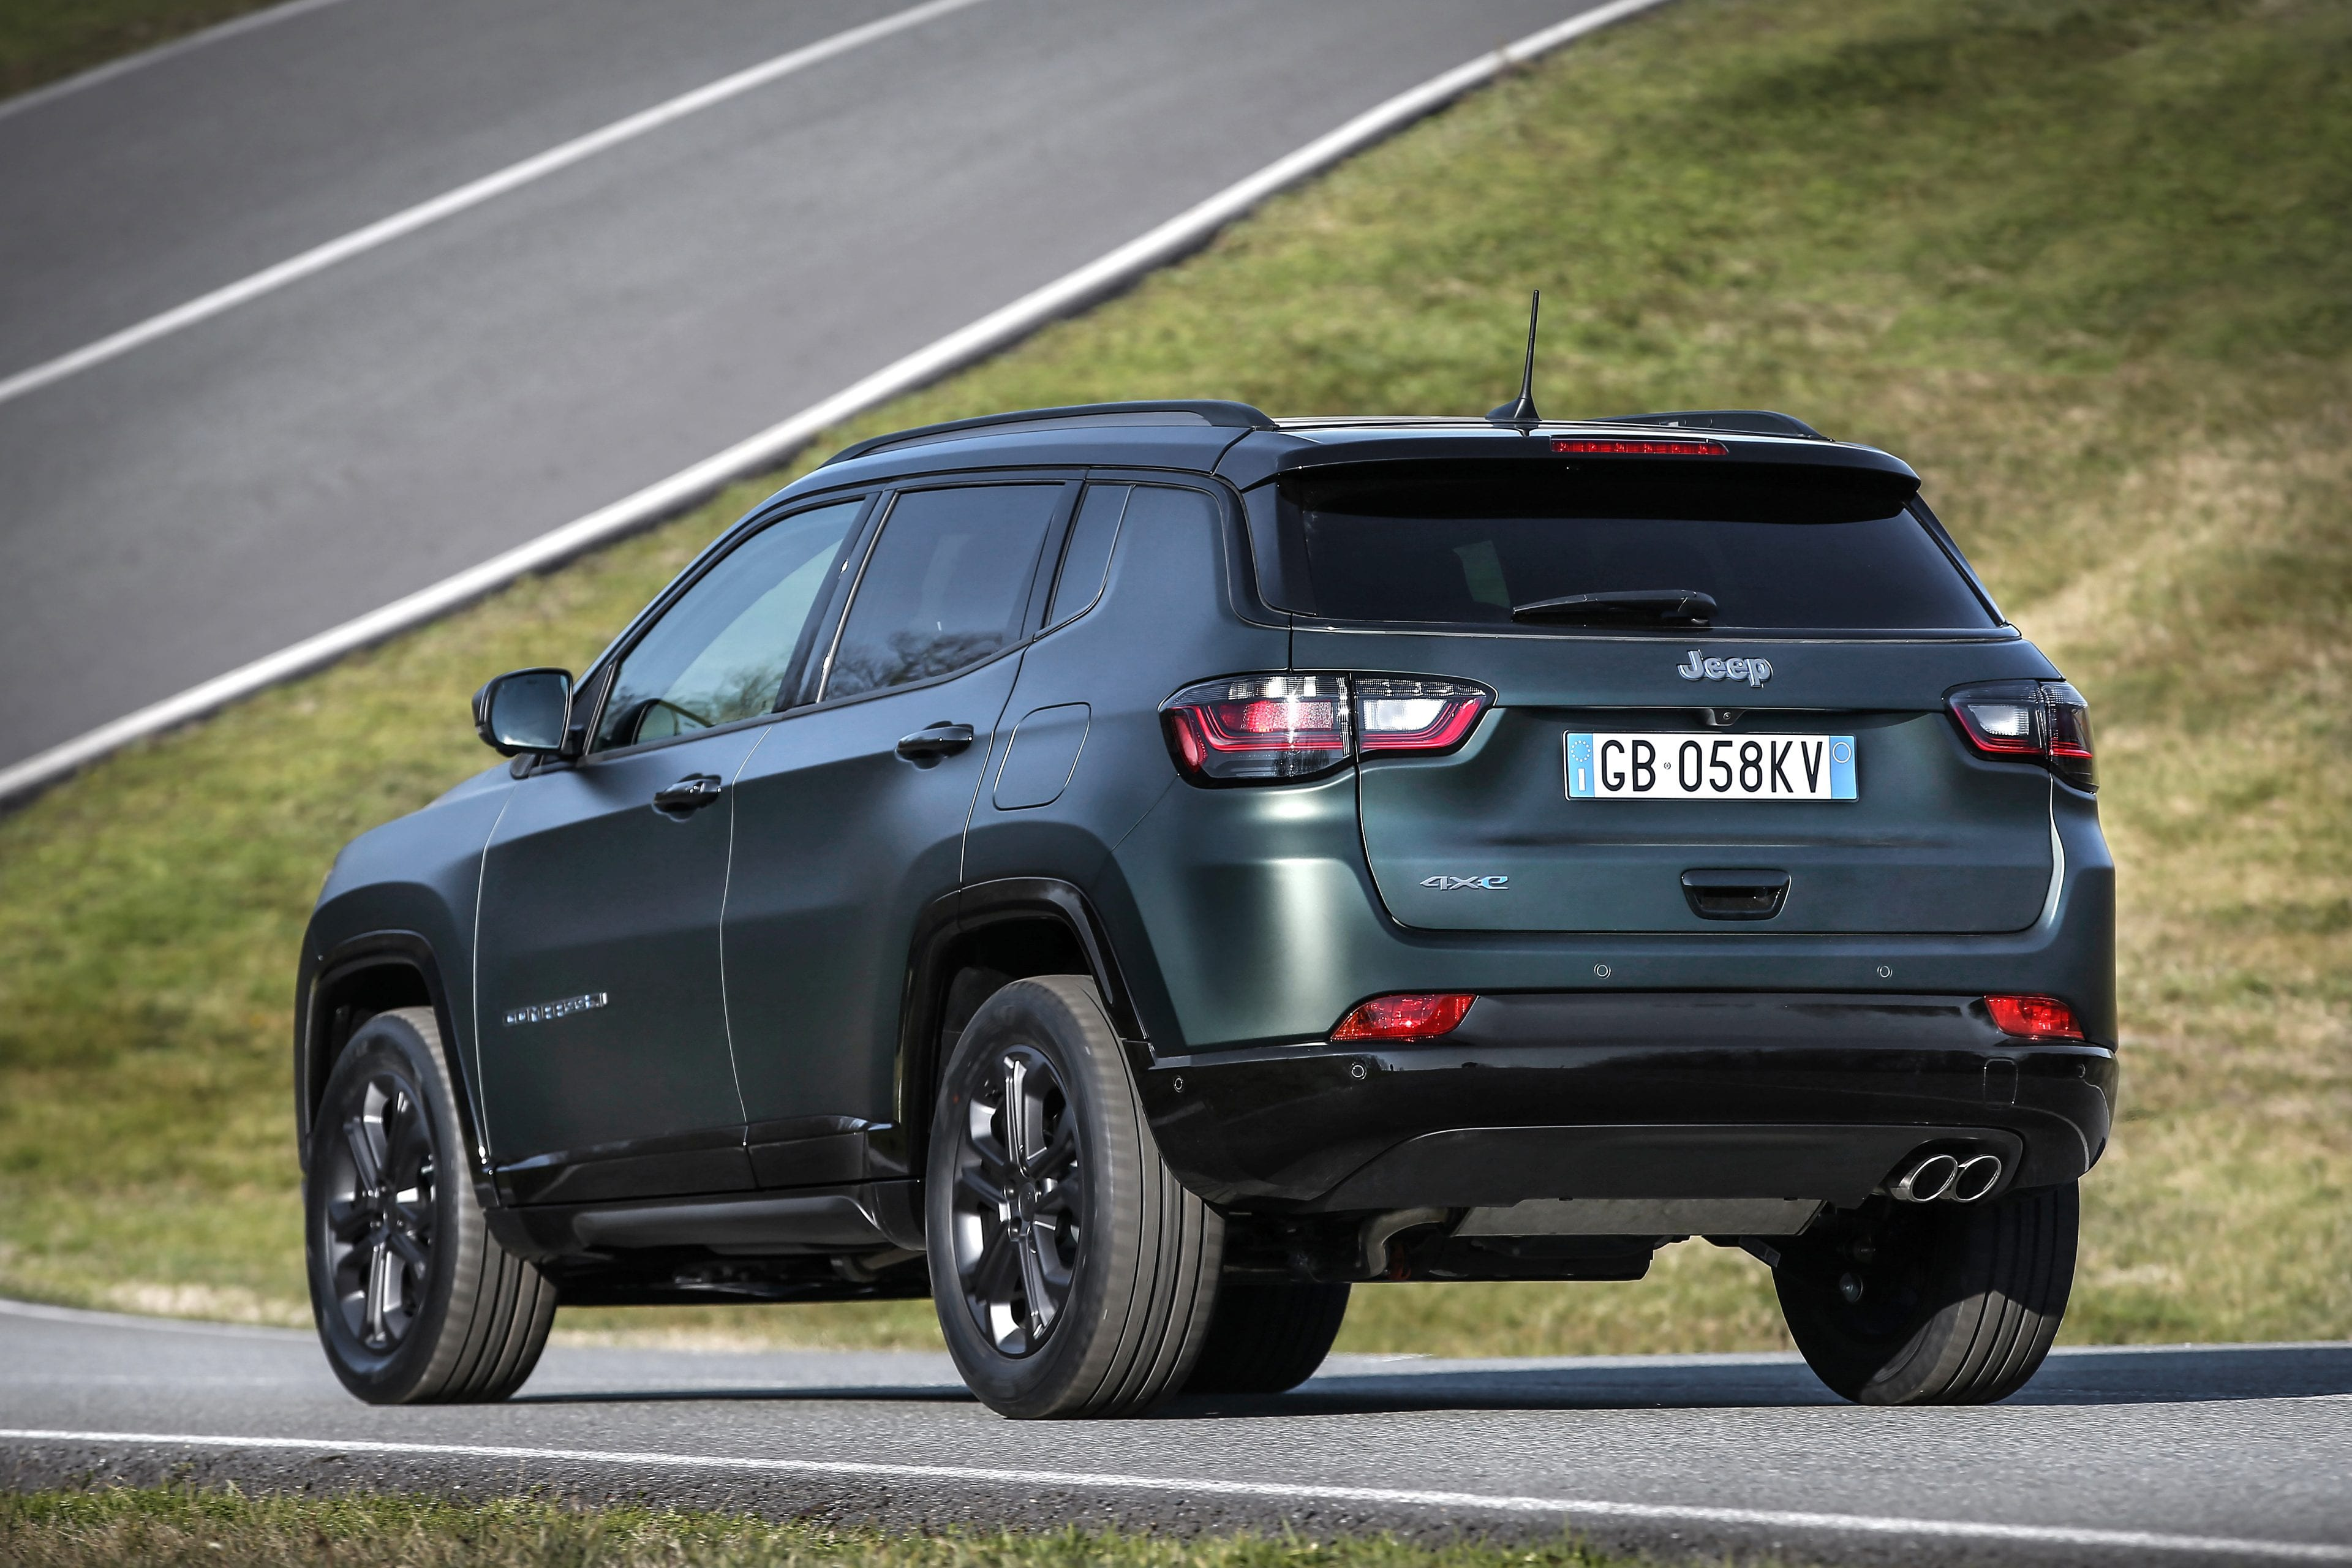 New Jeep Compass 80th Anniversary 4xe - achterkant rijdend